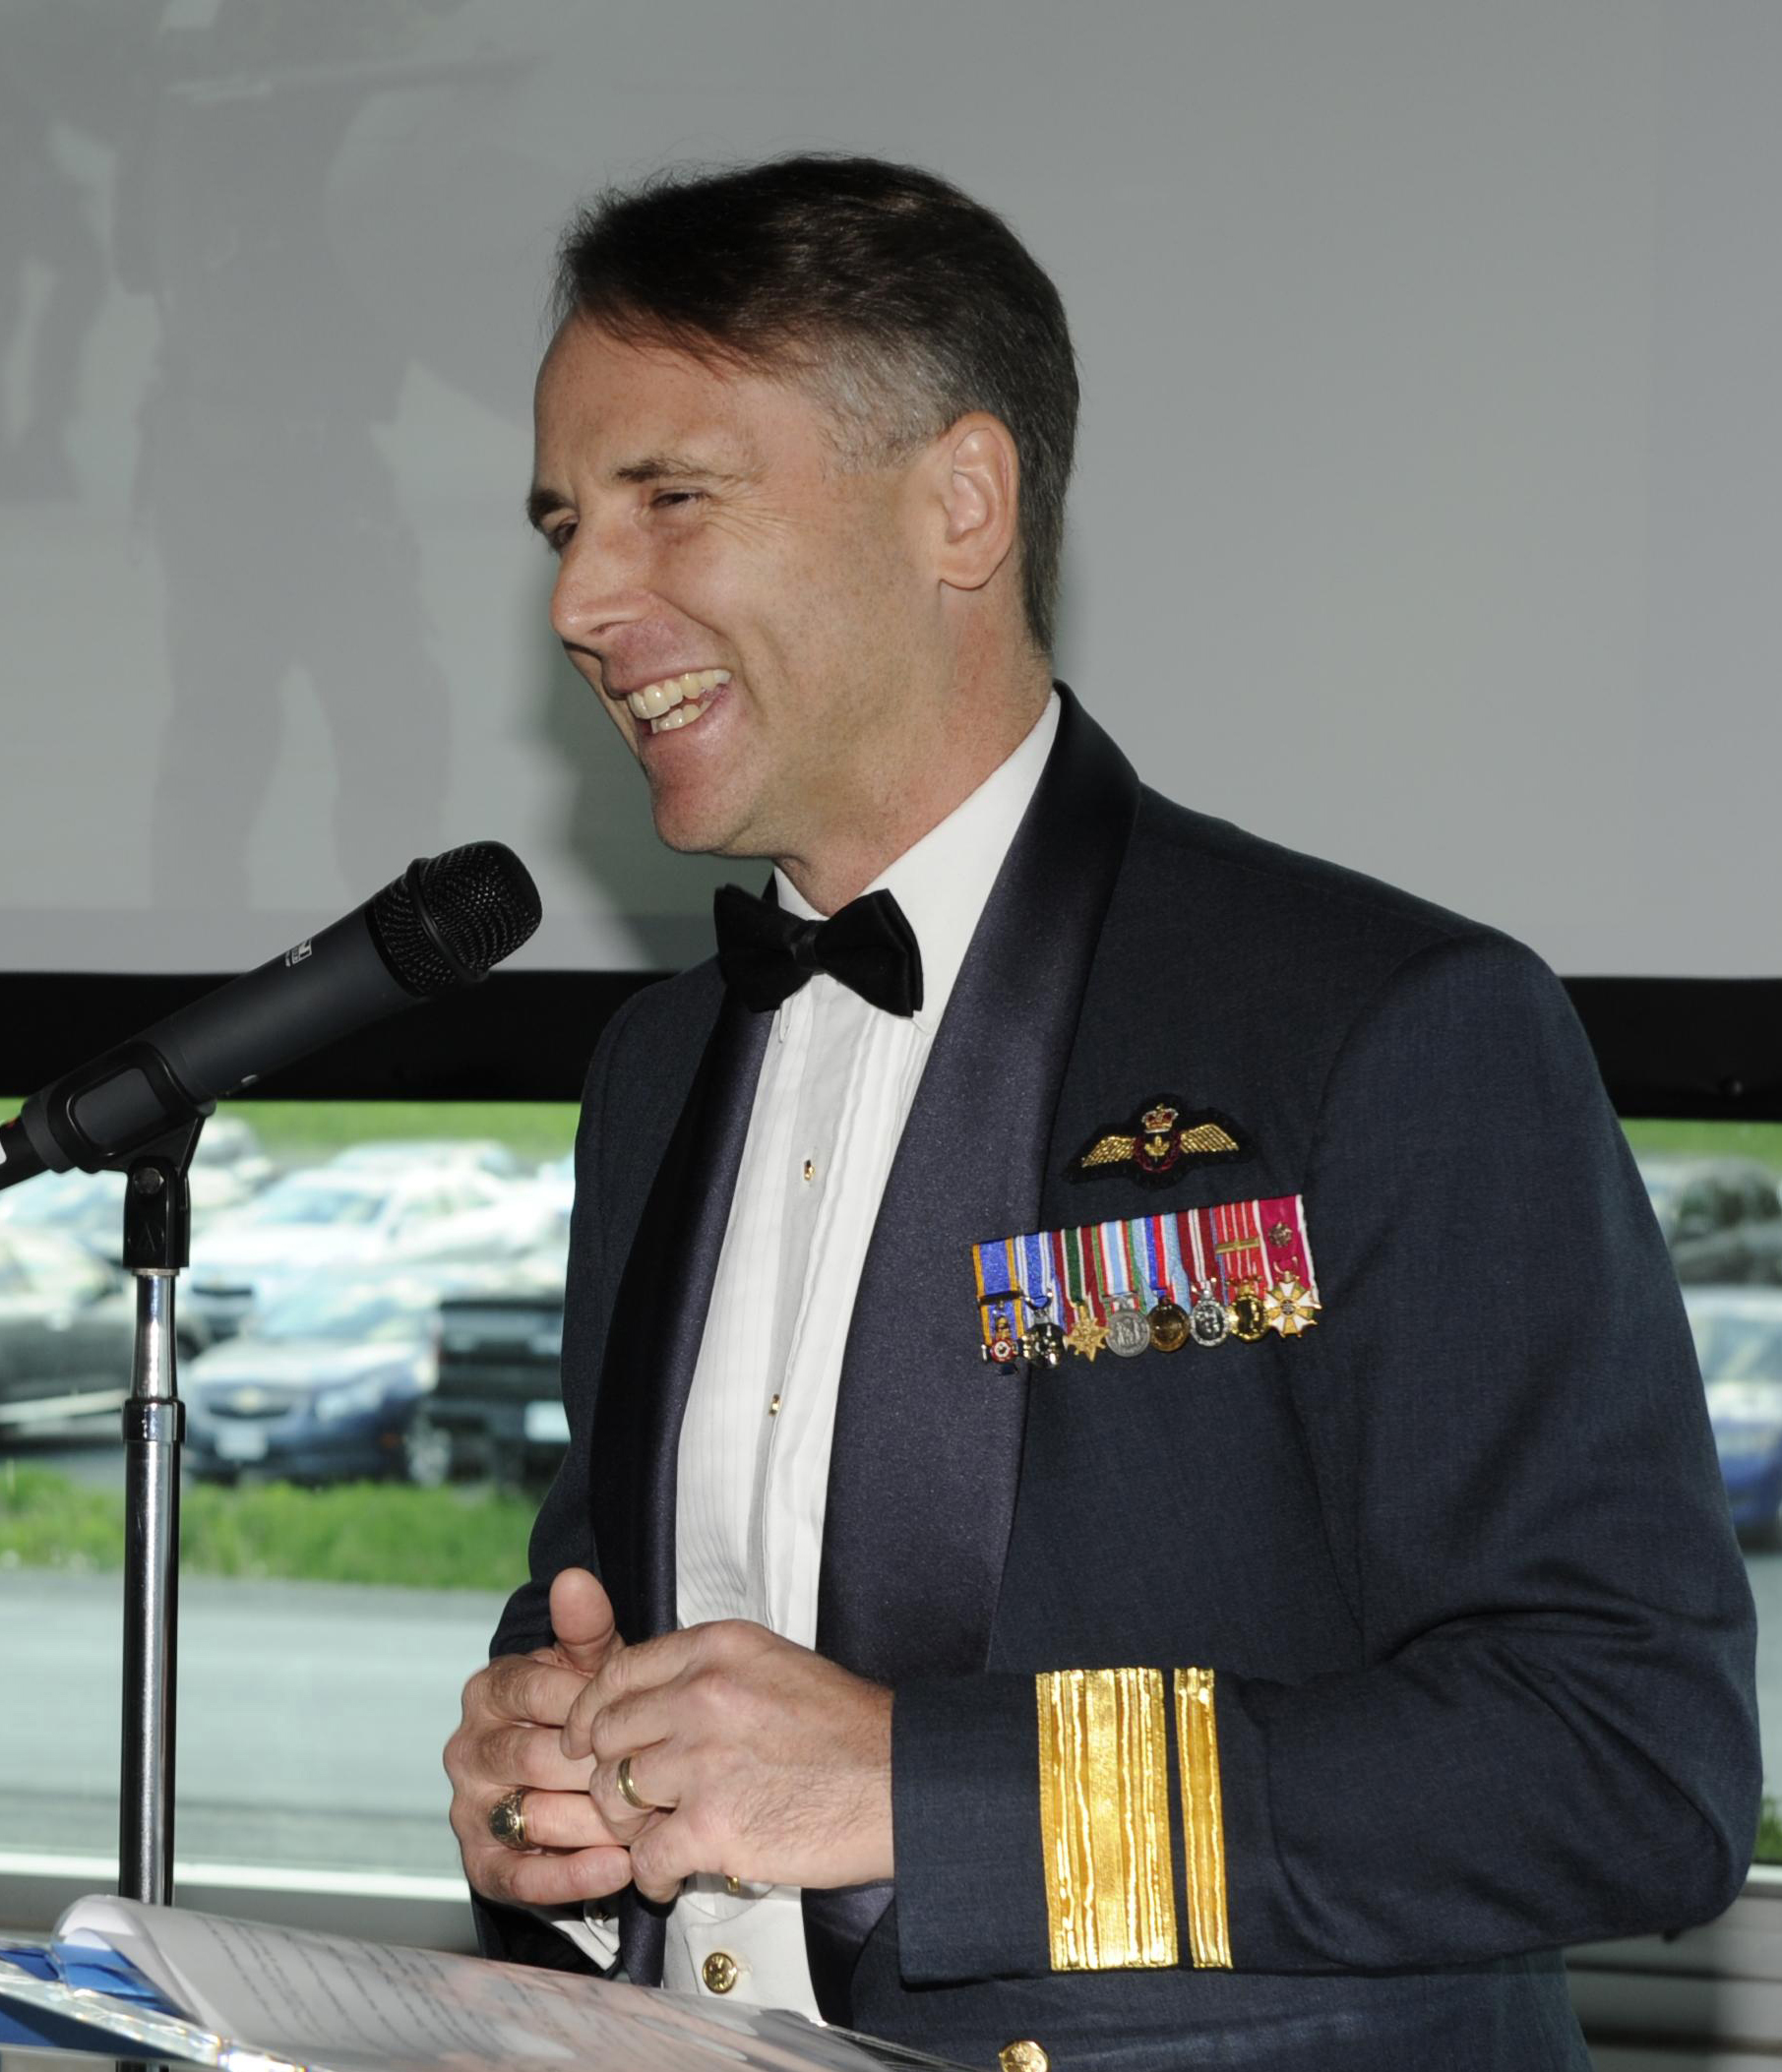 "Major-General Meinzinger, deputy commander of the Royal Canadian Air Force and former commanding officer of 403 Helicopter Operational Training Squadron, addresses current and former ""Wolfpack"" members at the squadron's 75th anniversary dinner, held May 27, 2016, in Gagetown, New Brunswick. On May 4, 2018, now-Lieutenant-General Meinzinger took command of the Royal Canadian Air Force. PHOTO: DND"